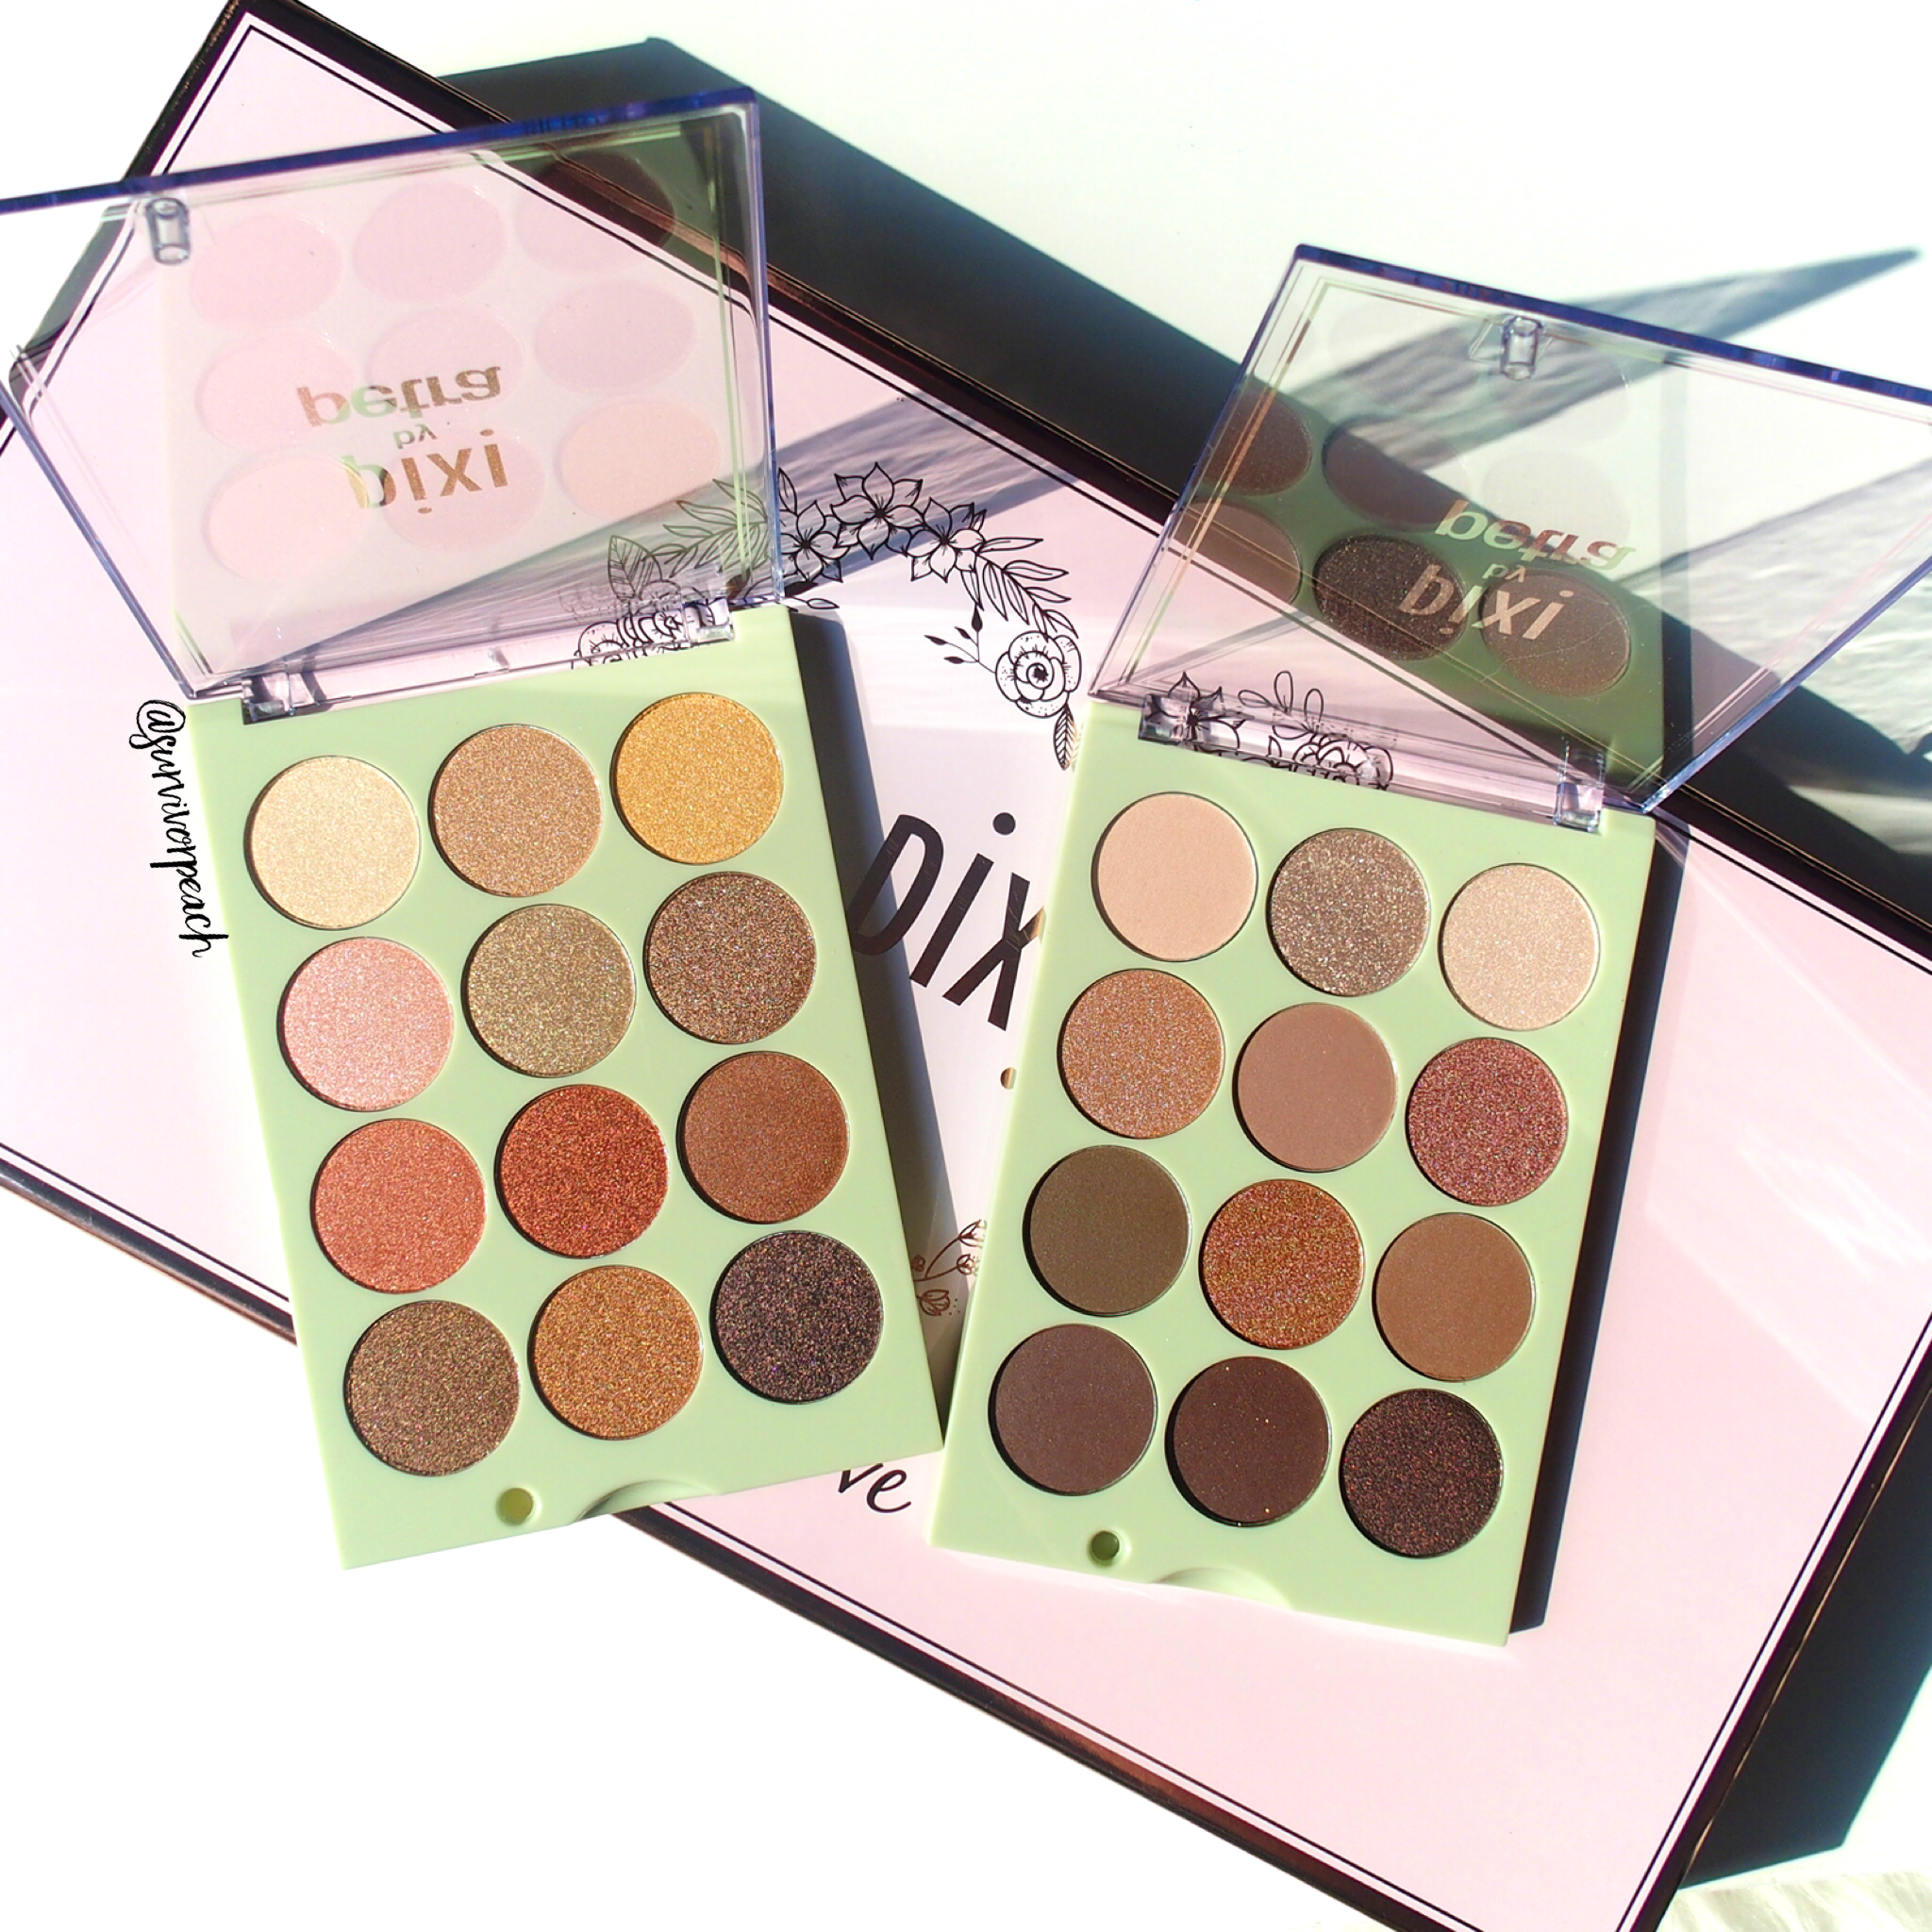 Pixi Eye Reflections Shadow palettes: Reflex Light and Natural Beauty